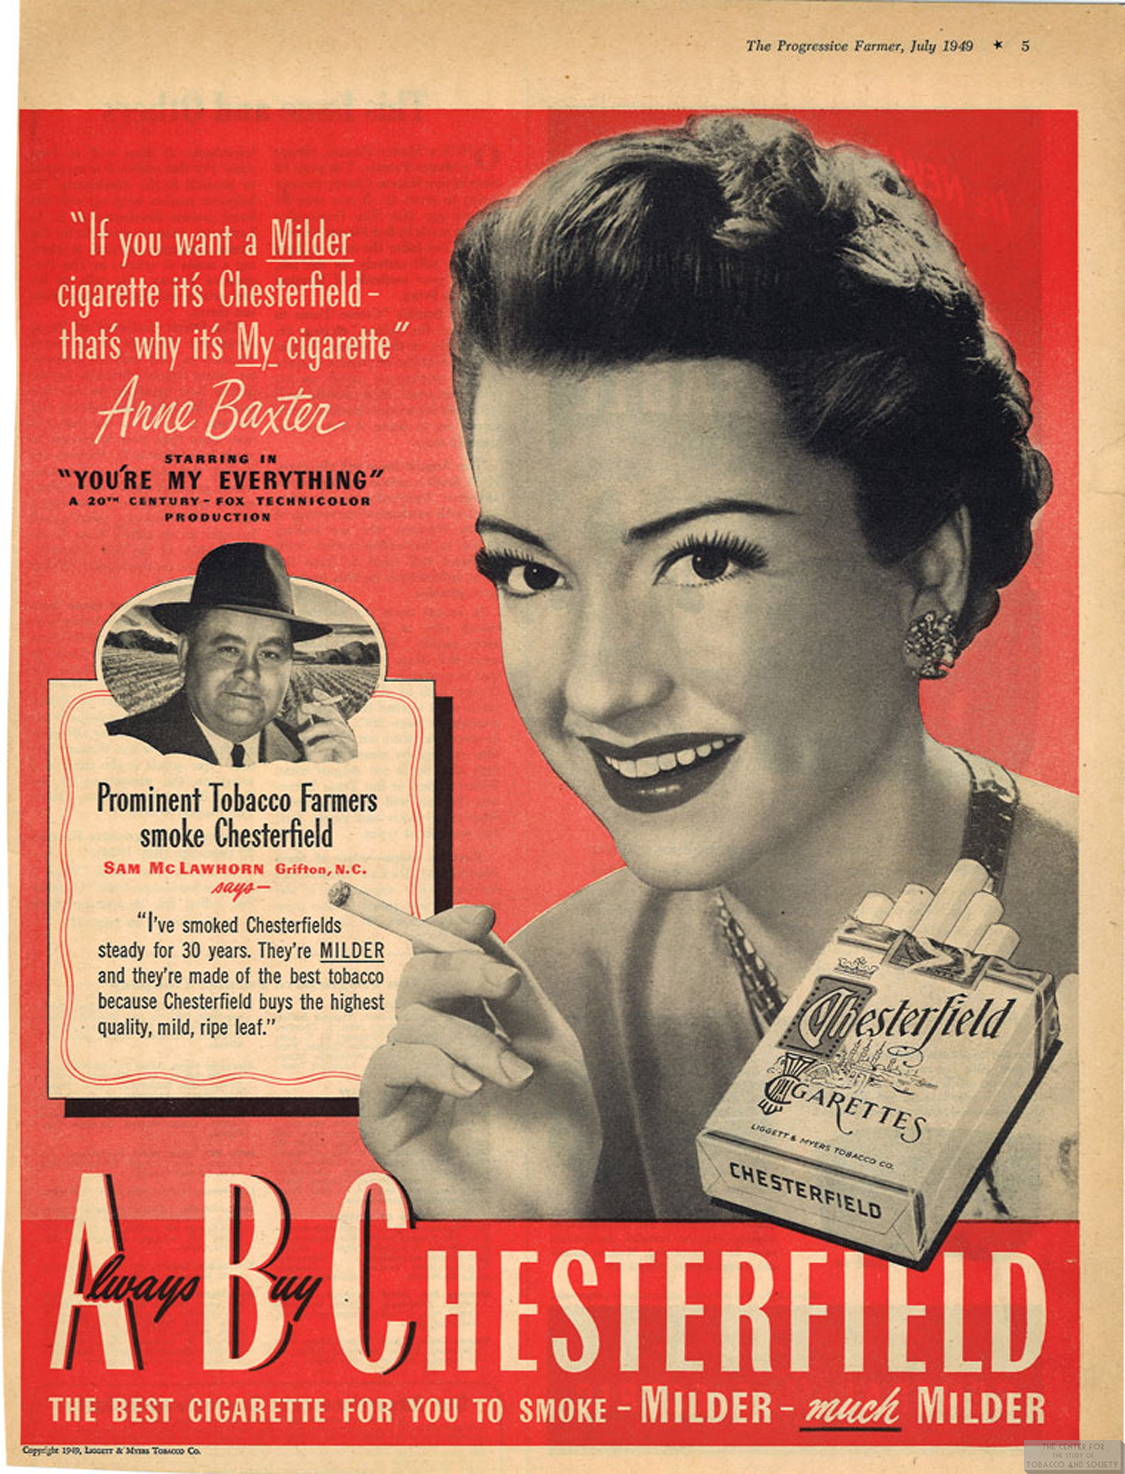 1949 07 The Progressive Farmer Anne Baxter for Chesterfield